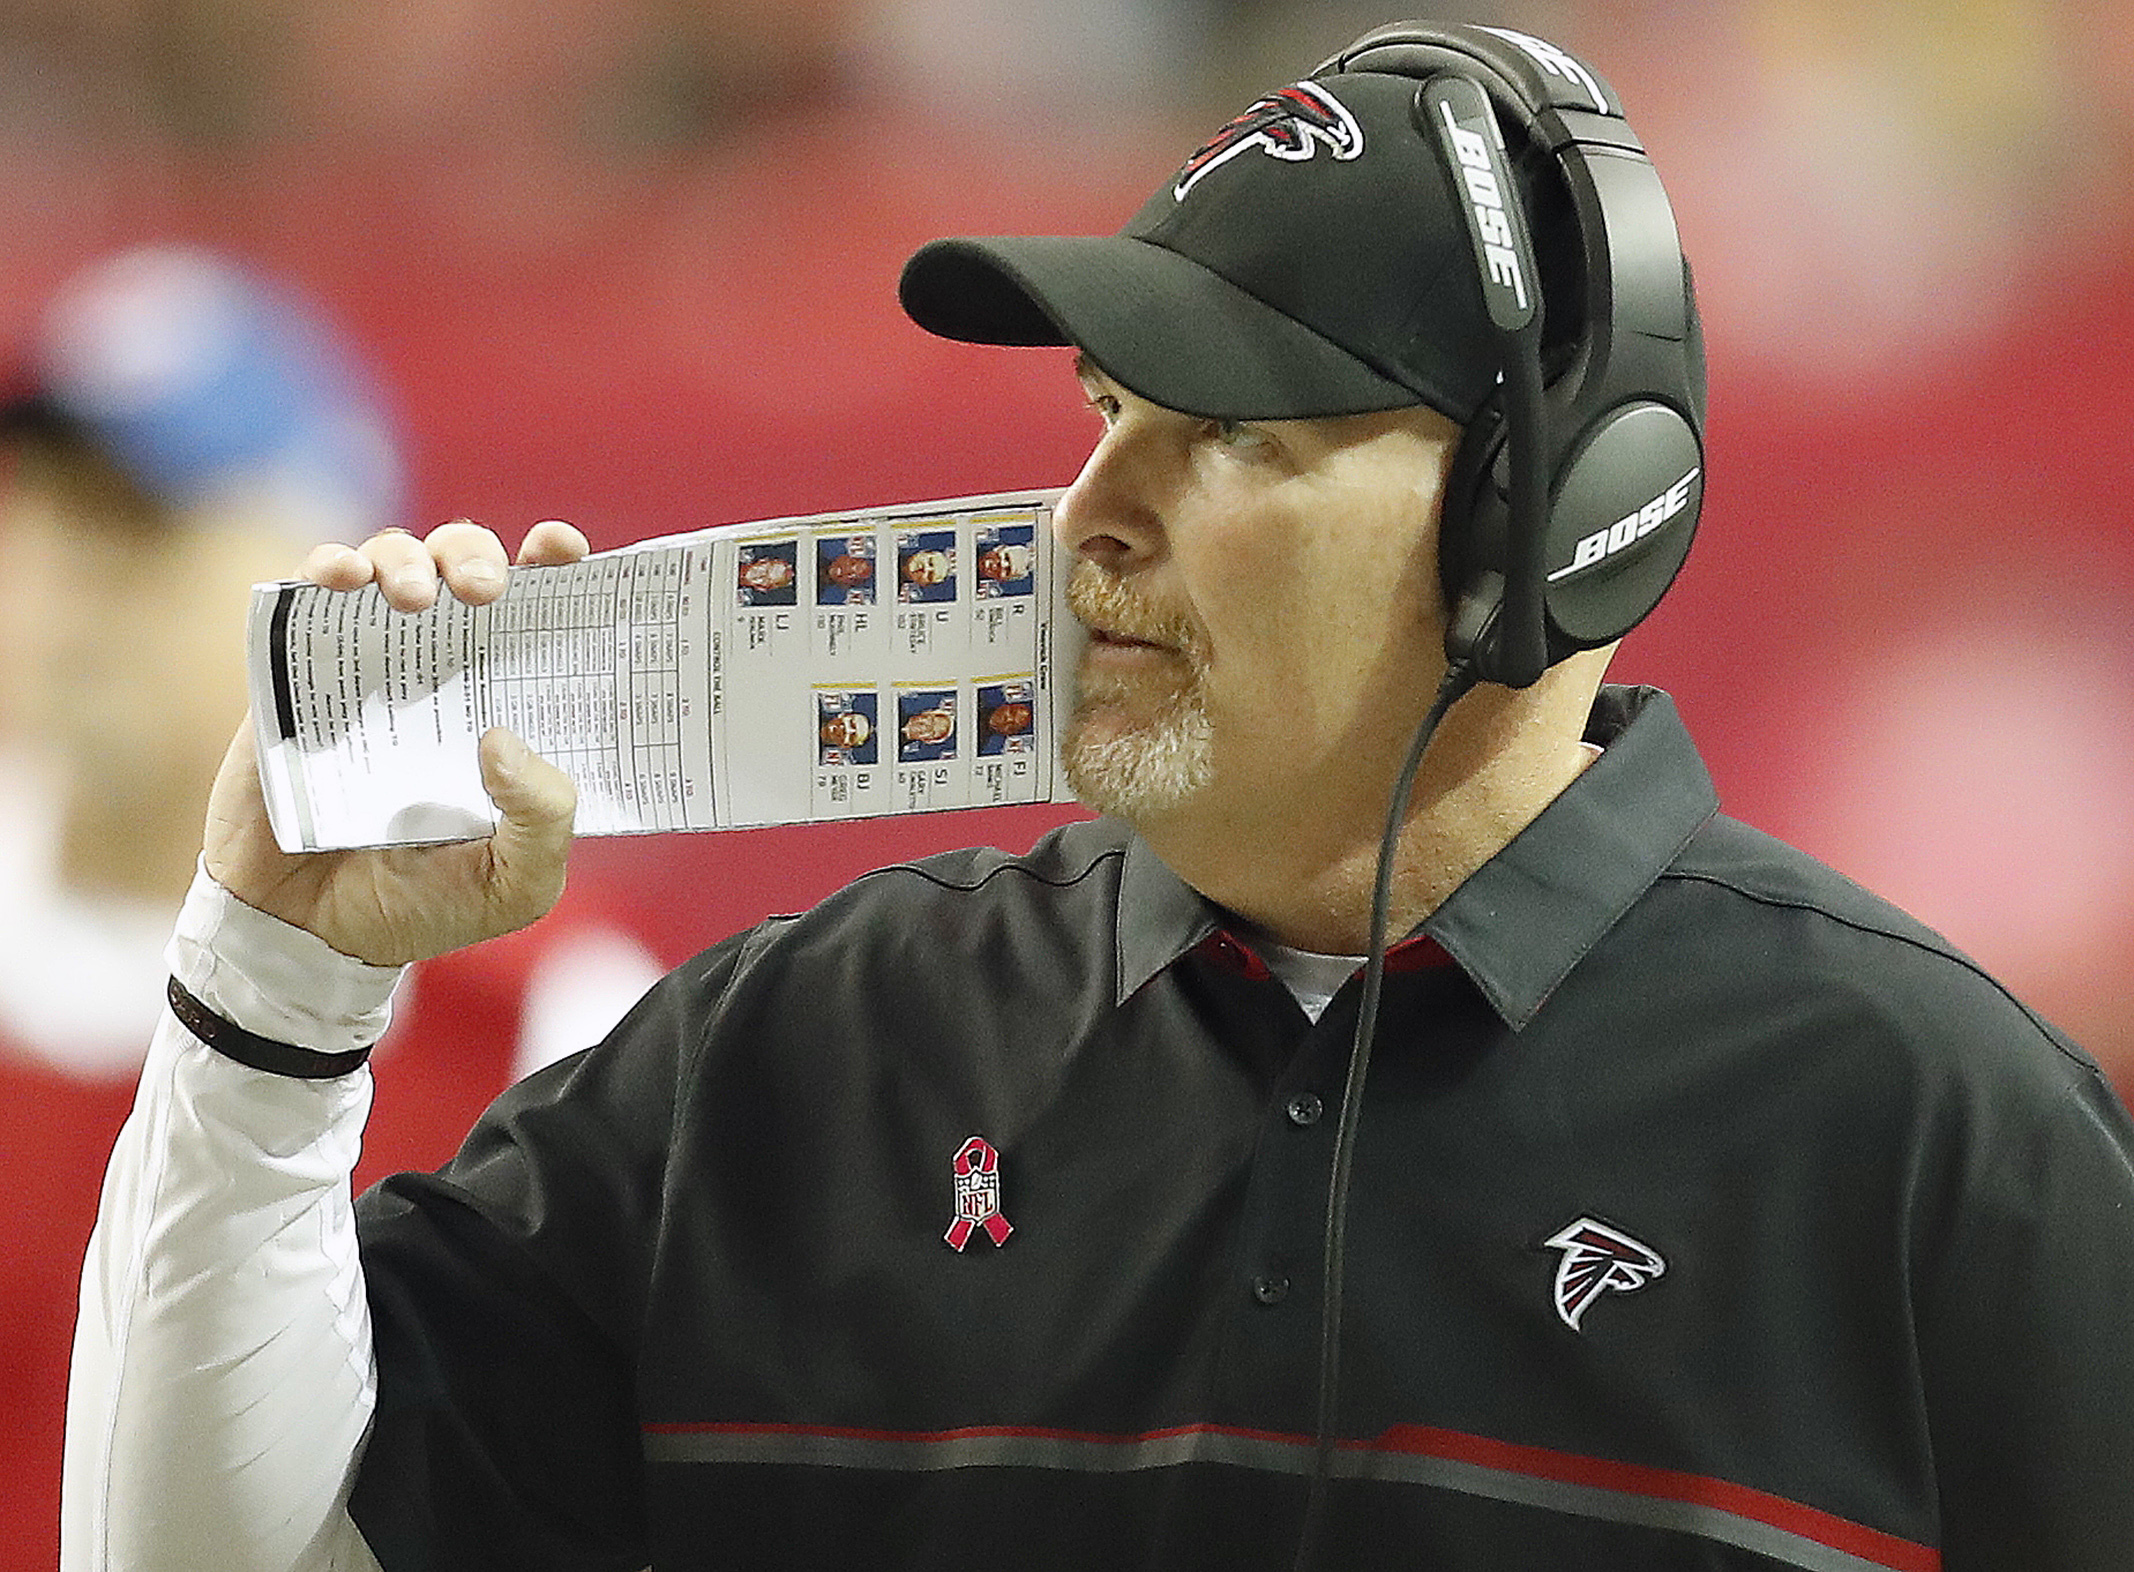 Atlanta Falcons head coach Dan Quinn walks the sidelines against the San Diego Chargers during the second half of an NFL football game, Sunday, Oct. 23, 2016, in Atlanta. (AP Photo/John Bazemore)